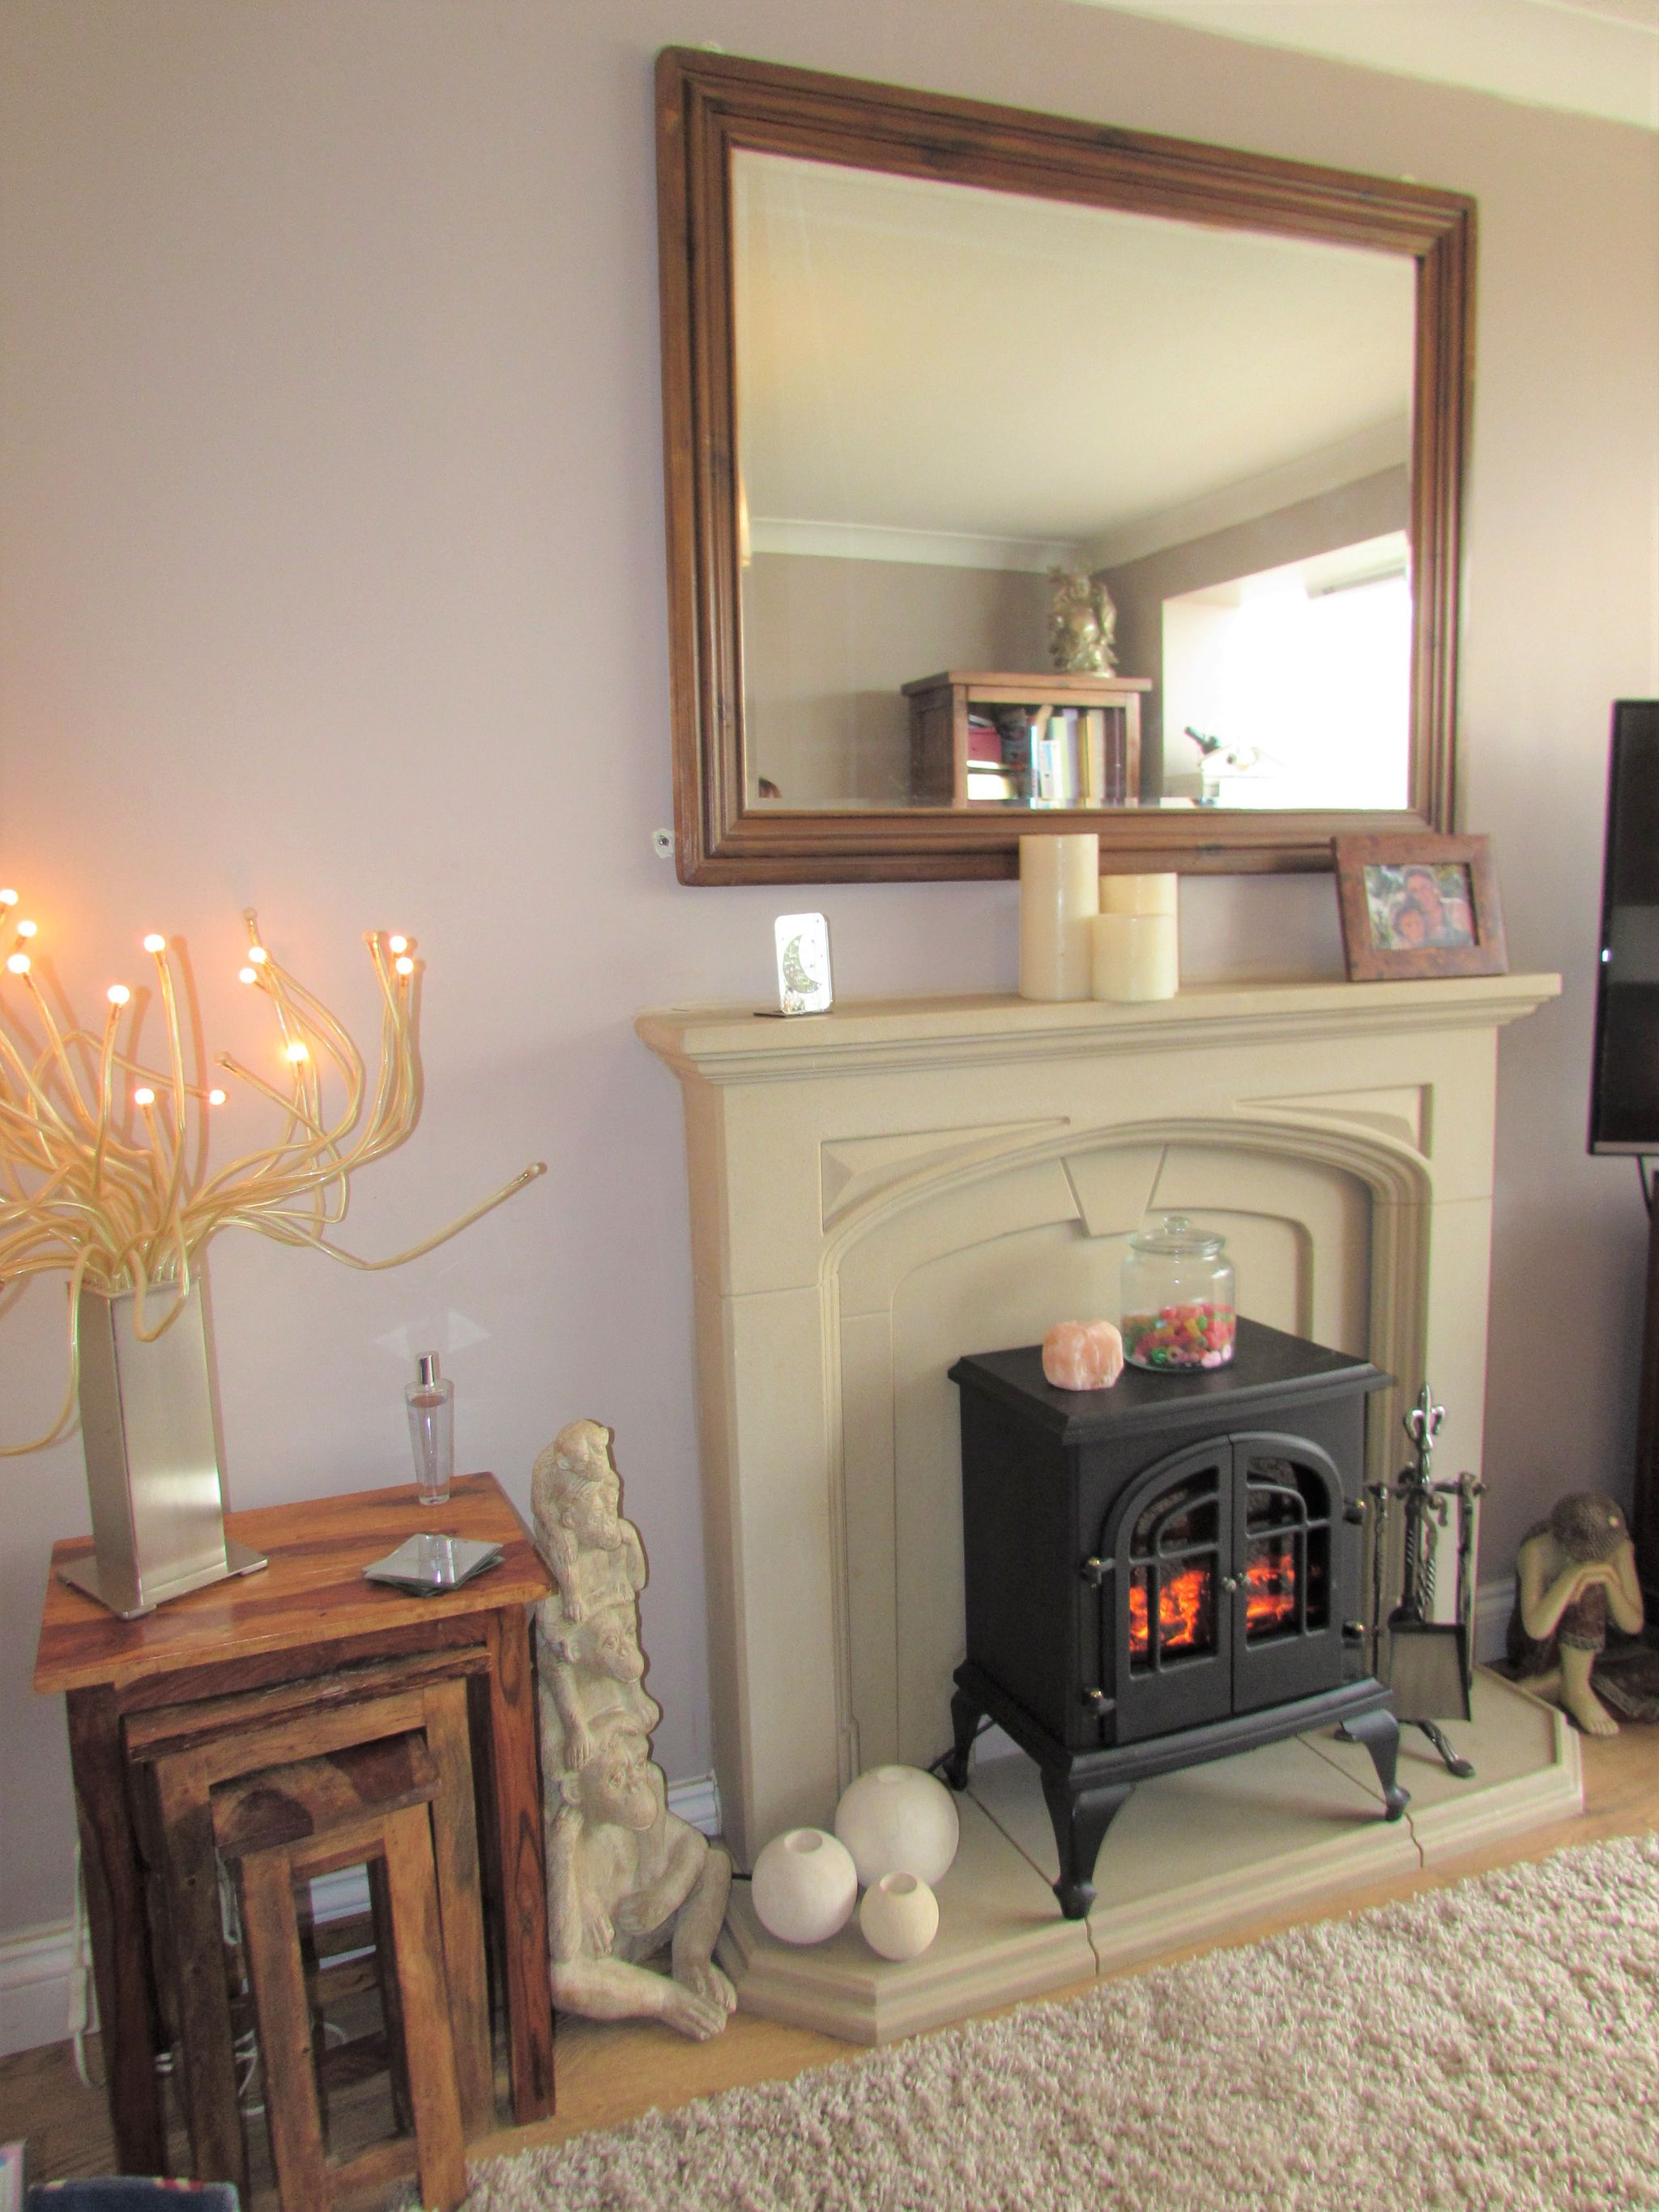 3 Bedroom Semi-detached House For Sale - Feature Fireplace Rear Lounge